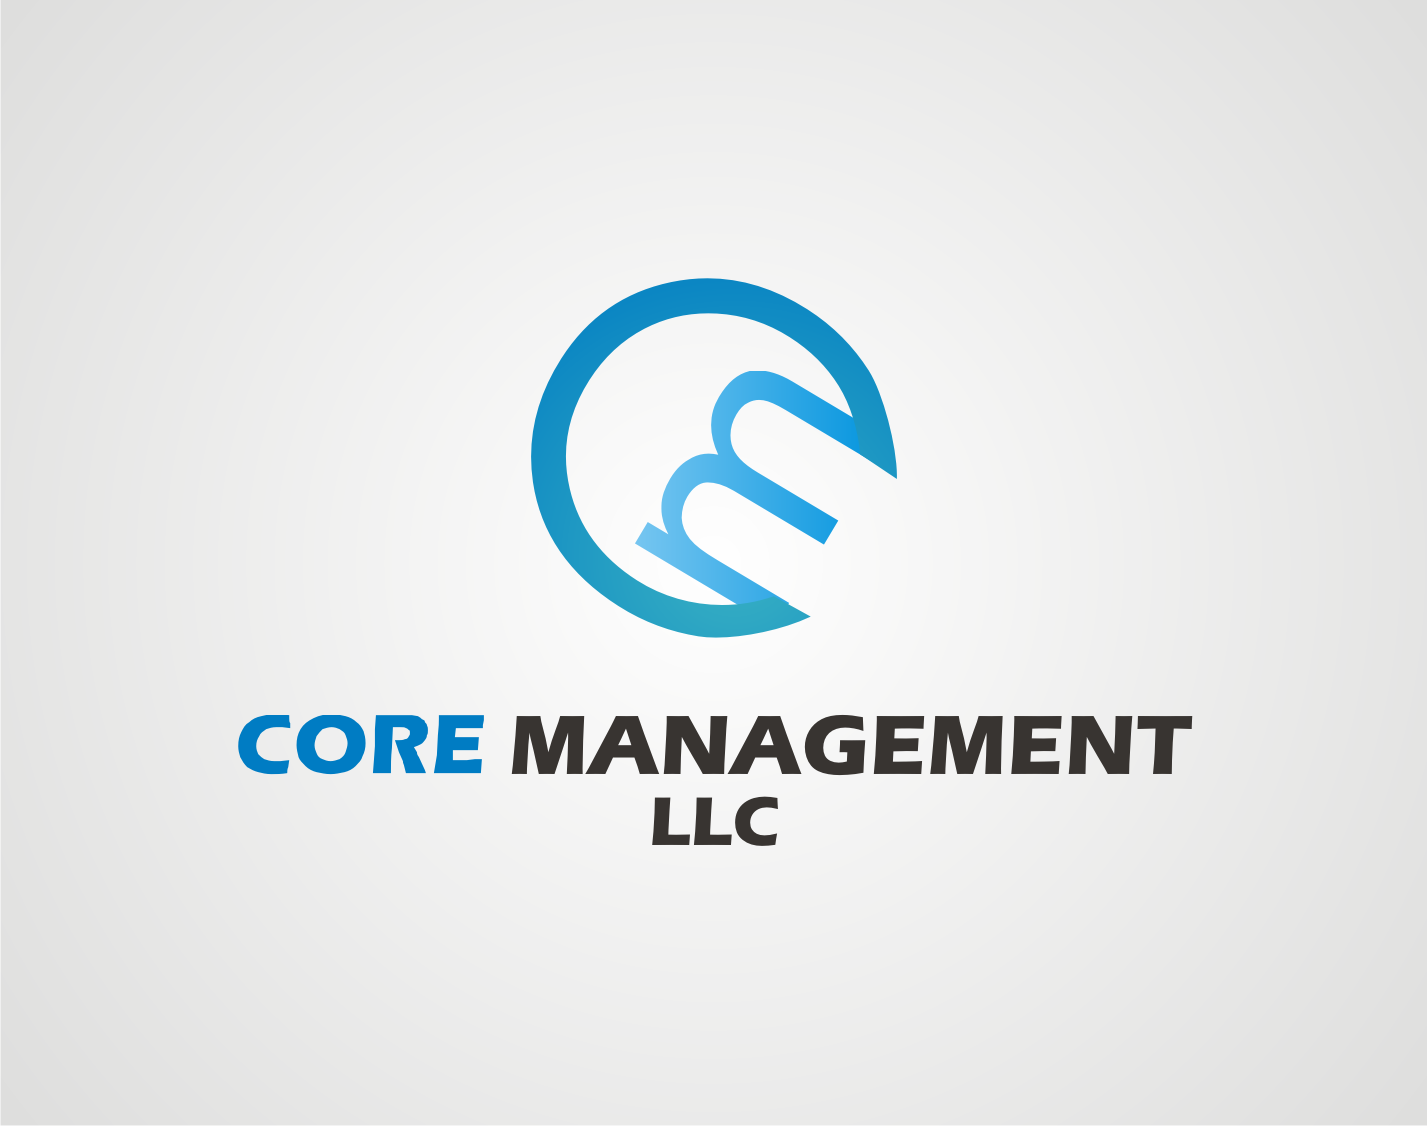 Logo Design by Nthus Nthis - Entry No. 3 in the Logo Design Contest Creative Logo Design for CORE Management, LLC.